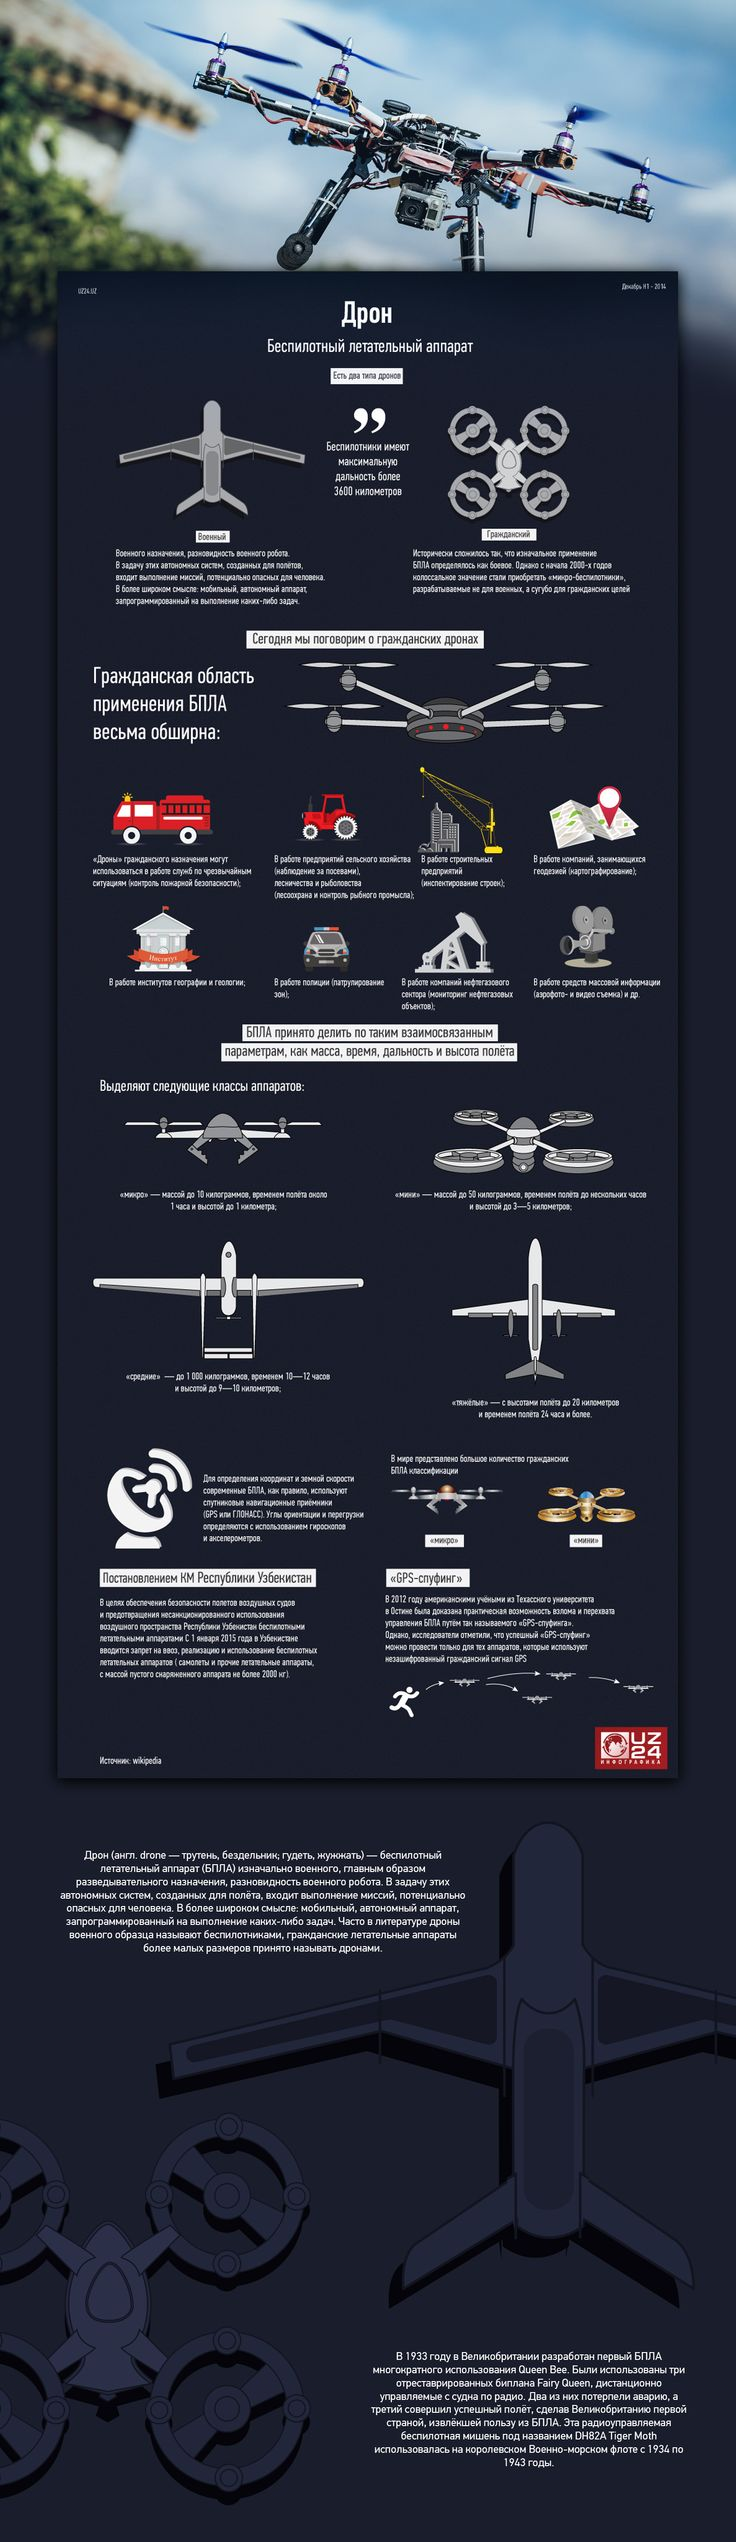 Drone infographic